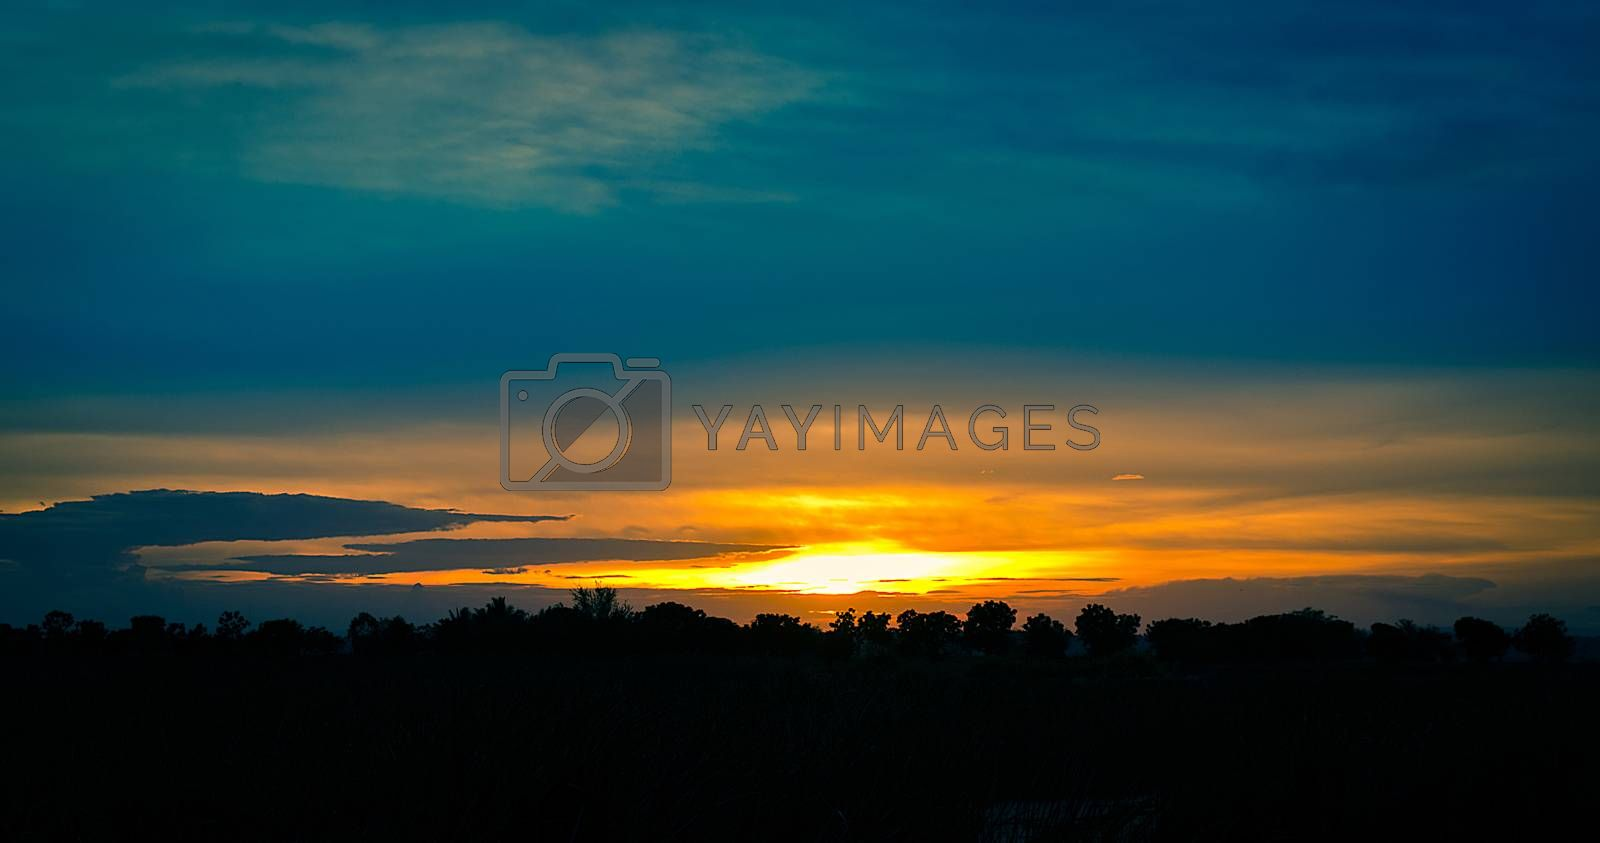 The Silhouette Landscape of Countryside Sunset View.